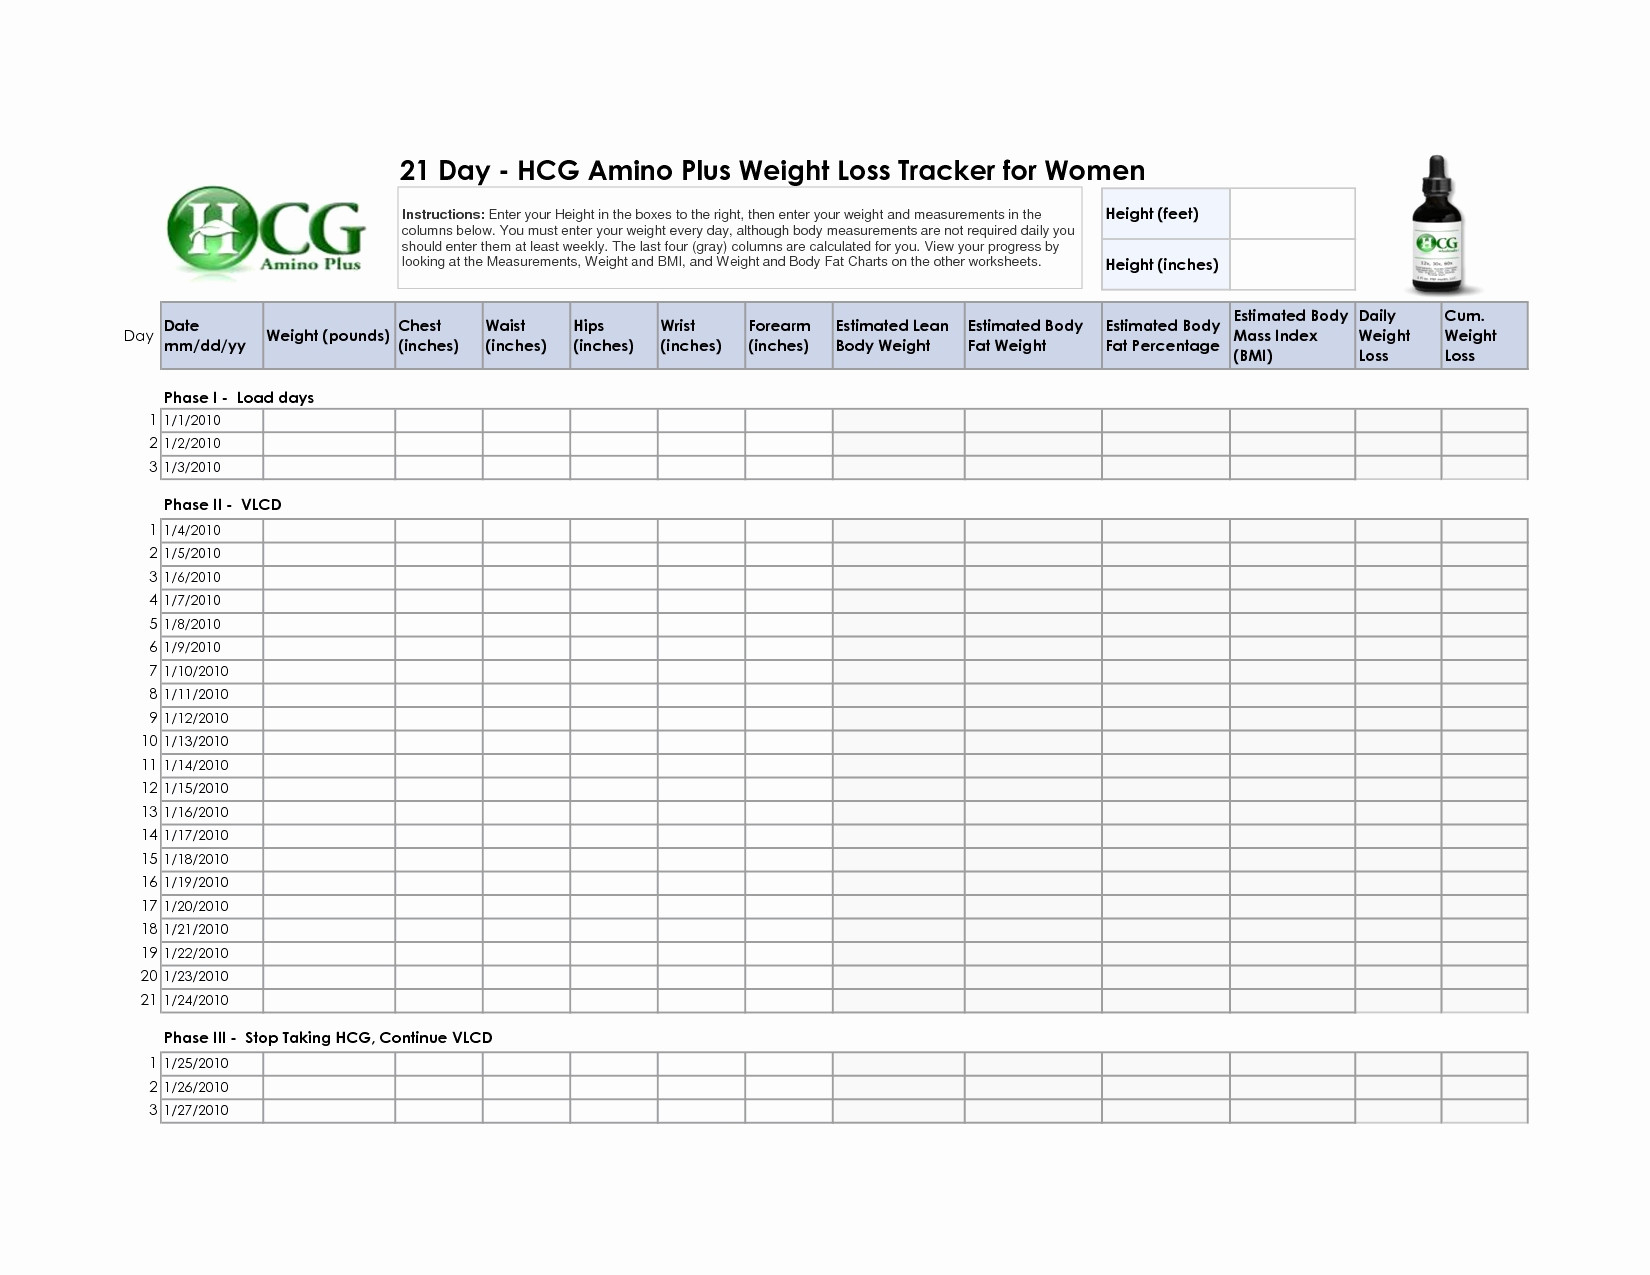 Biggest Loser Spreadsheet Intended For Biggest Loser Excel Spreadsheet And Weight Loss Chart Template